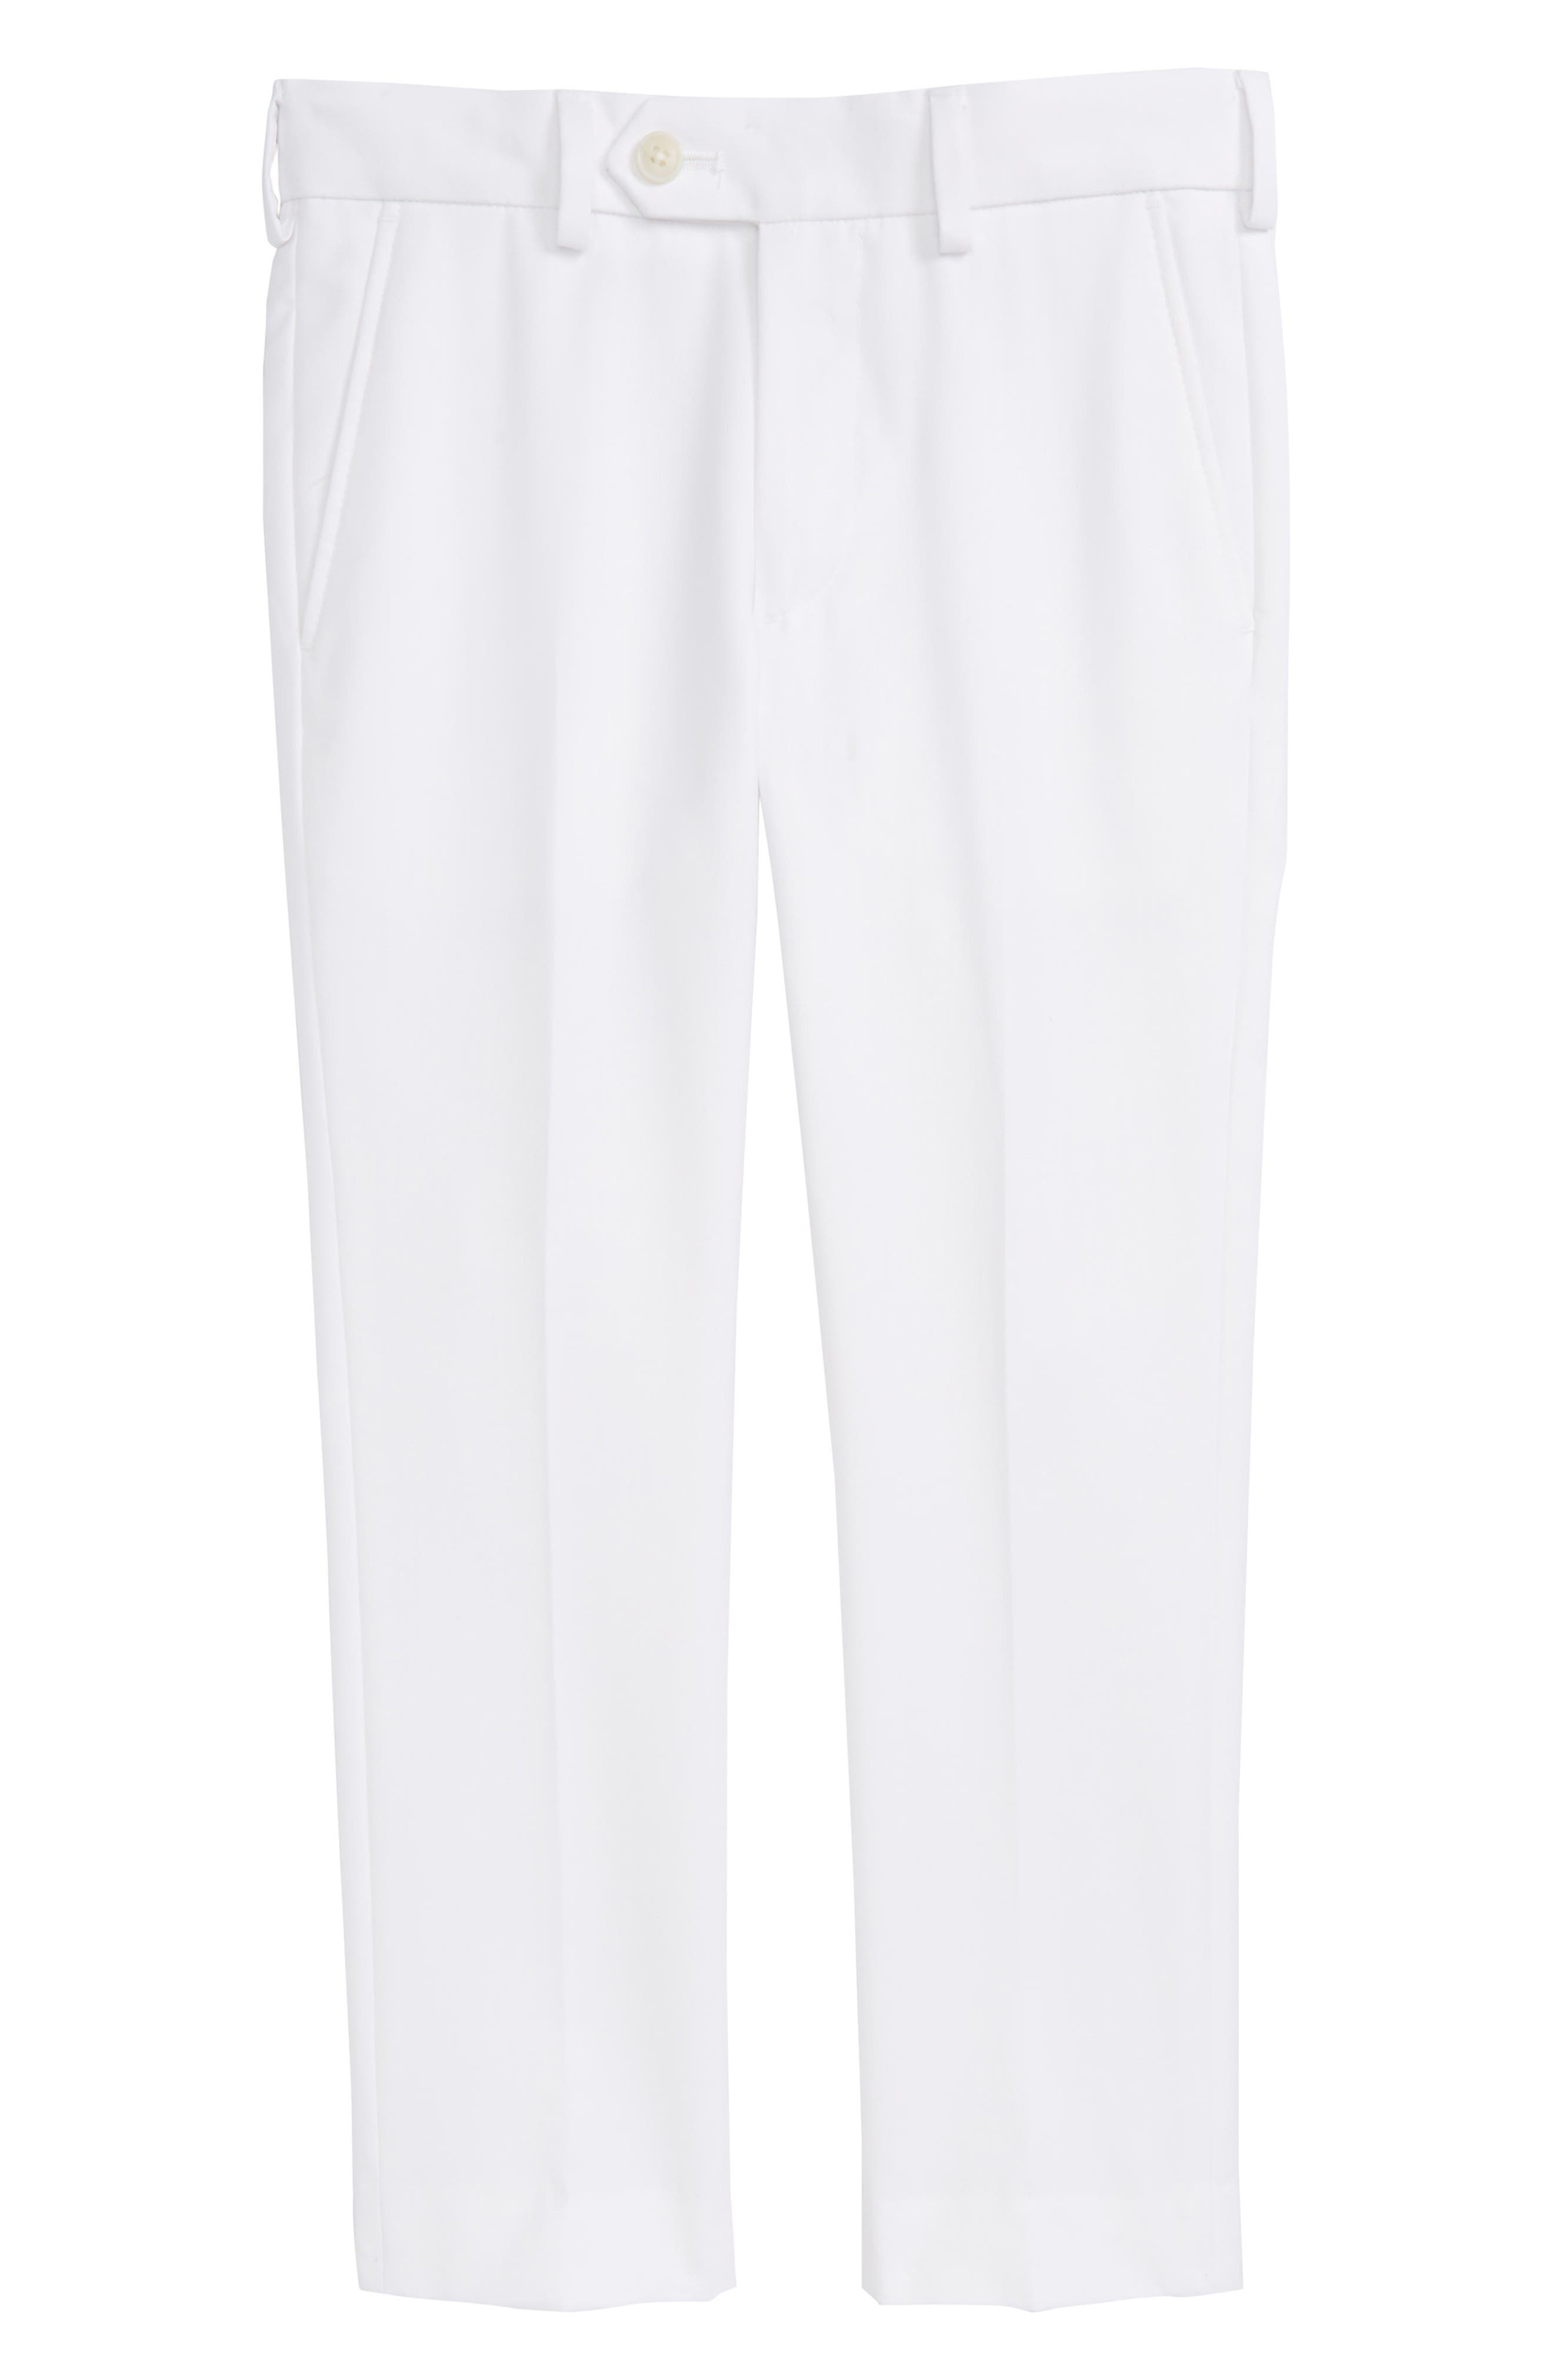 Flat Front Trousers,                         Main,                         color, White